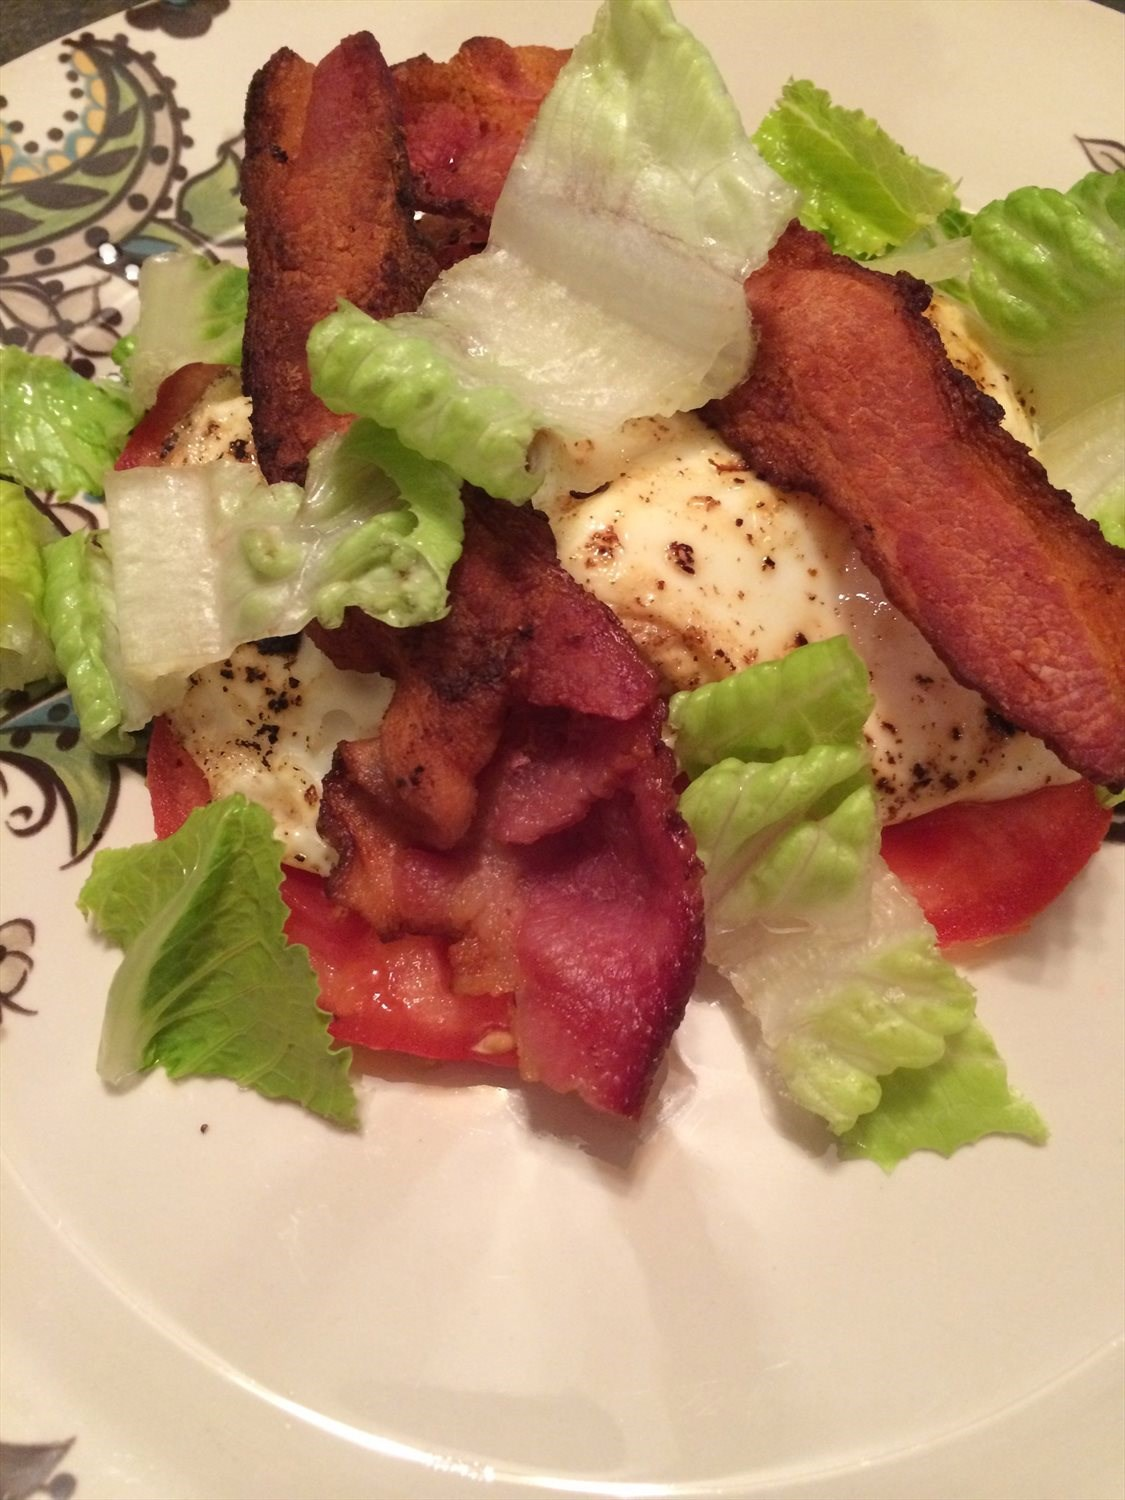 Bread-less Egg BLT